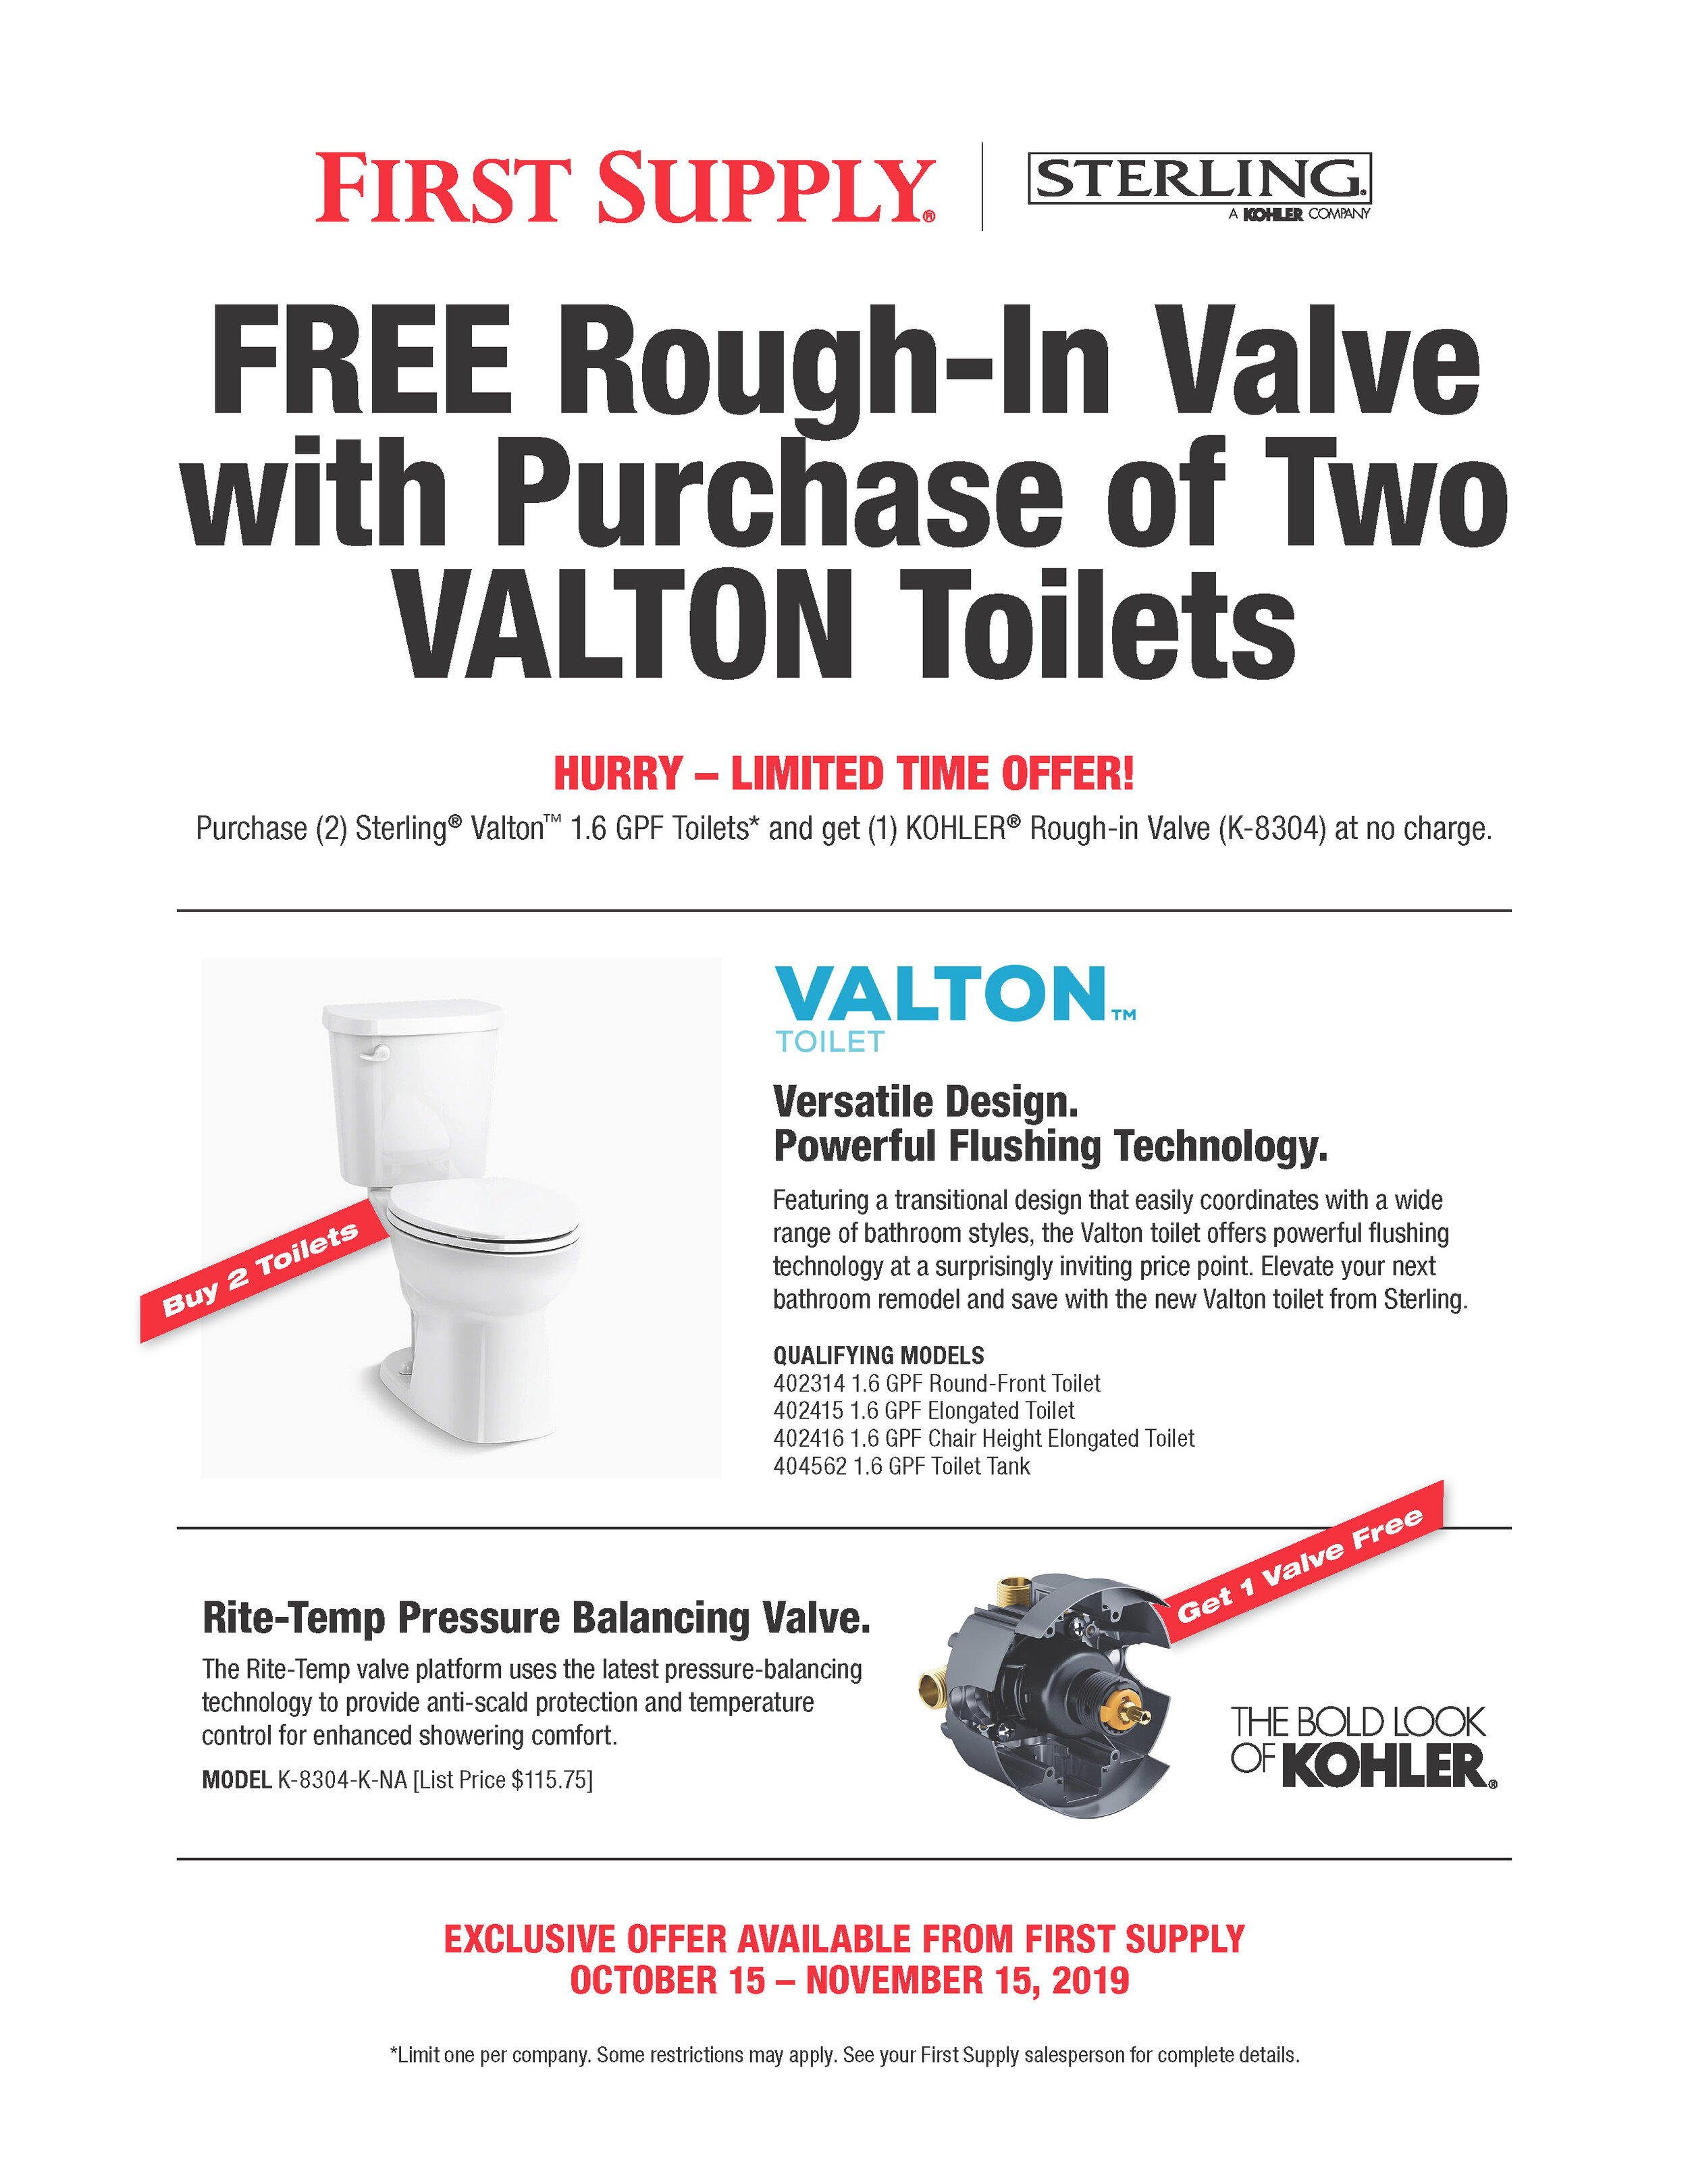 FS-Sterling-Valton-Toilet-Offer-2019.jpg